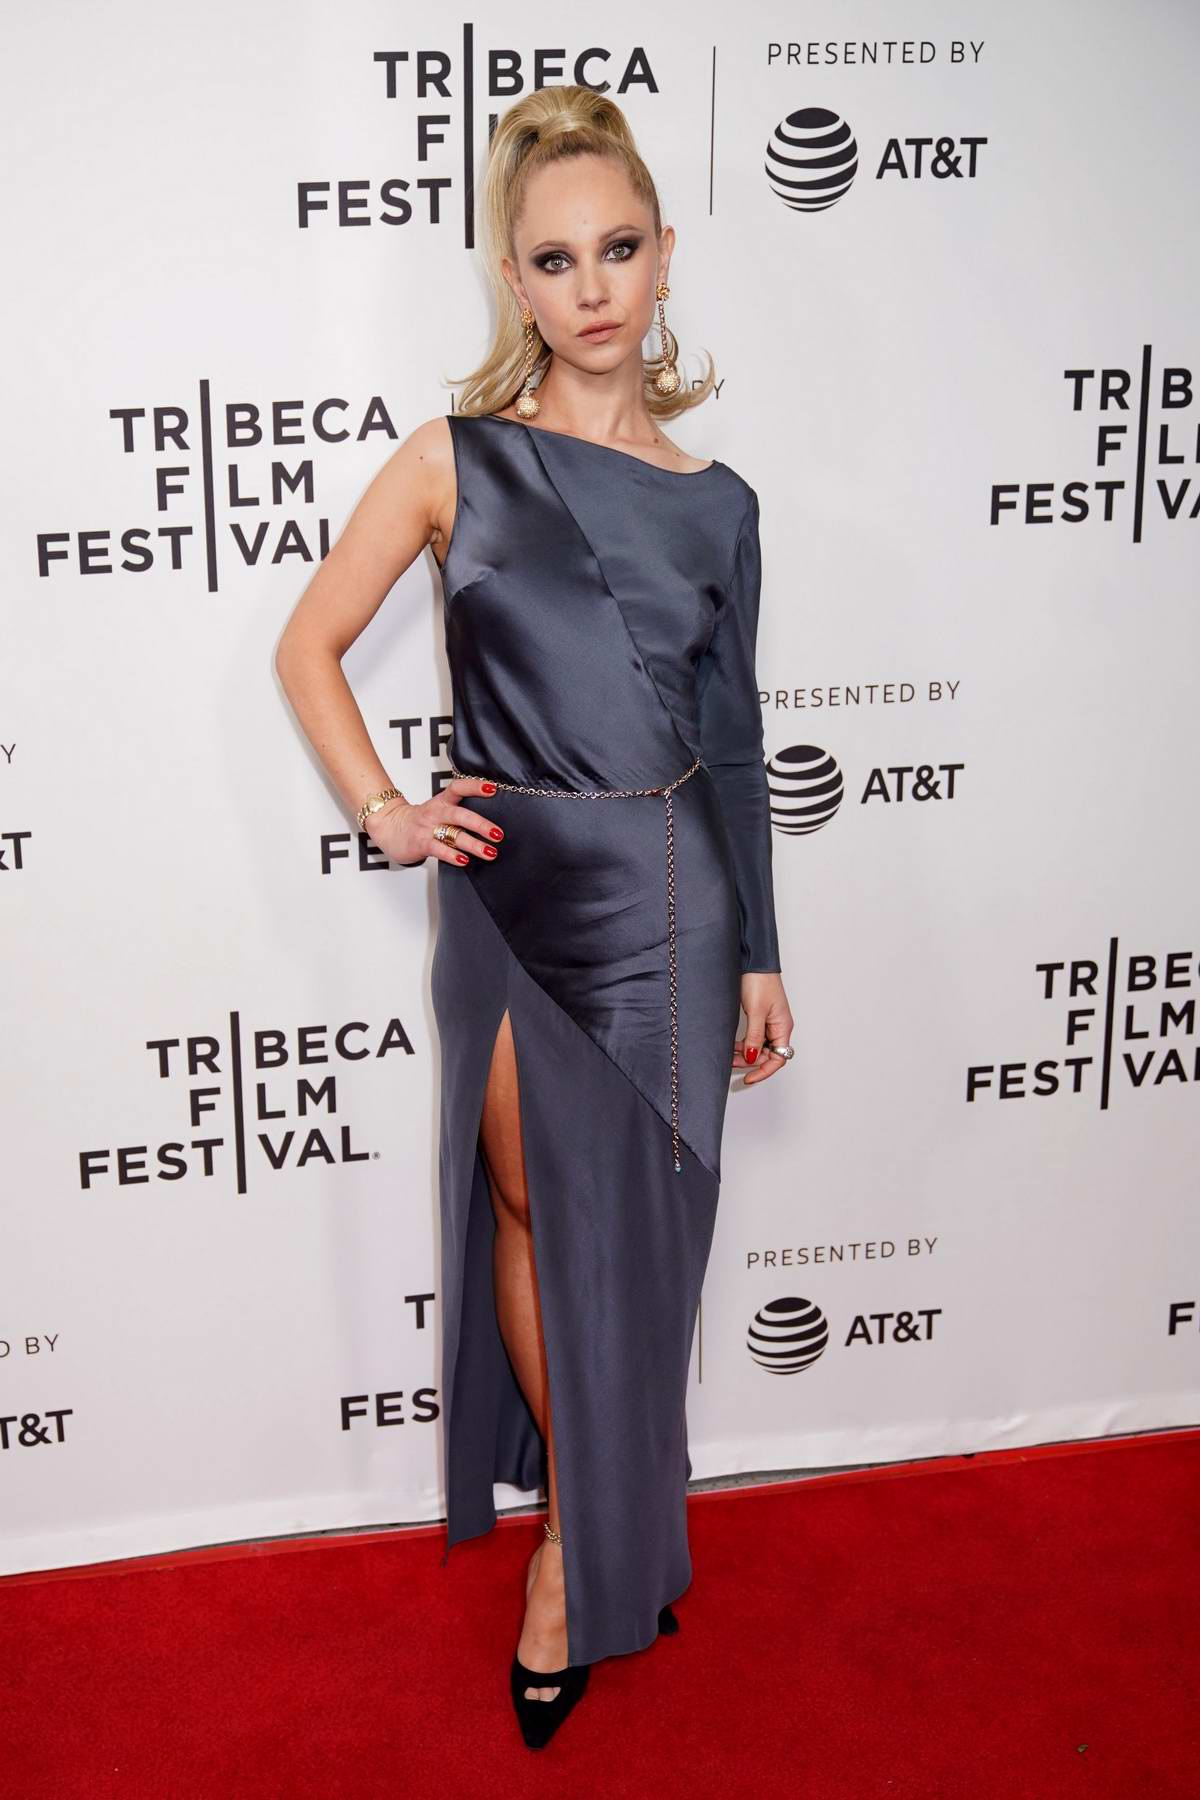 Juno Temple attends 'Lost Transmissions' premiere during 2019 Tribeca Film Festival in New York City